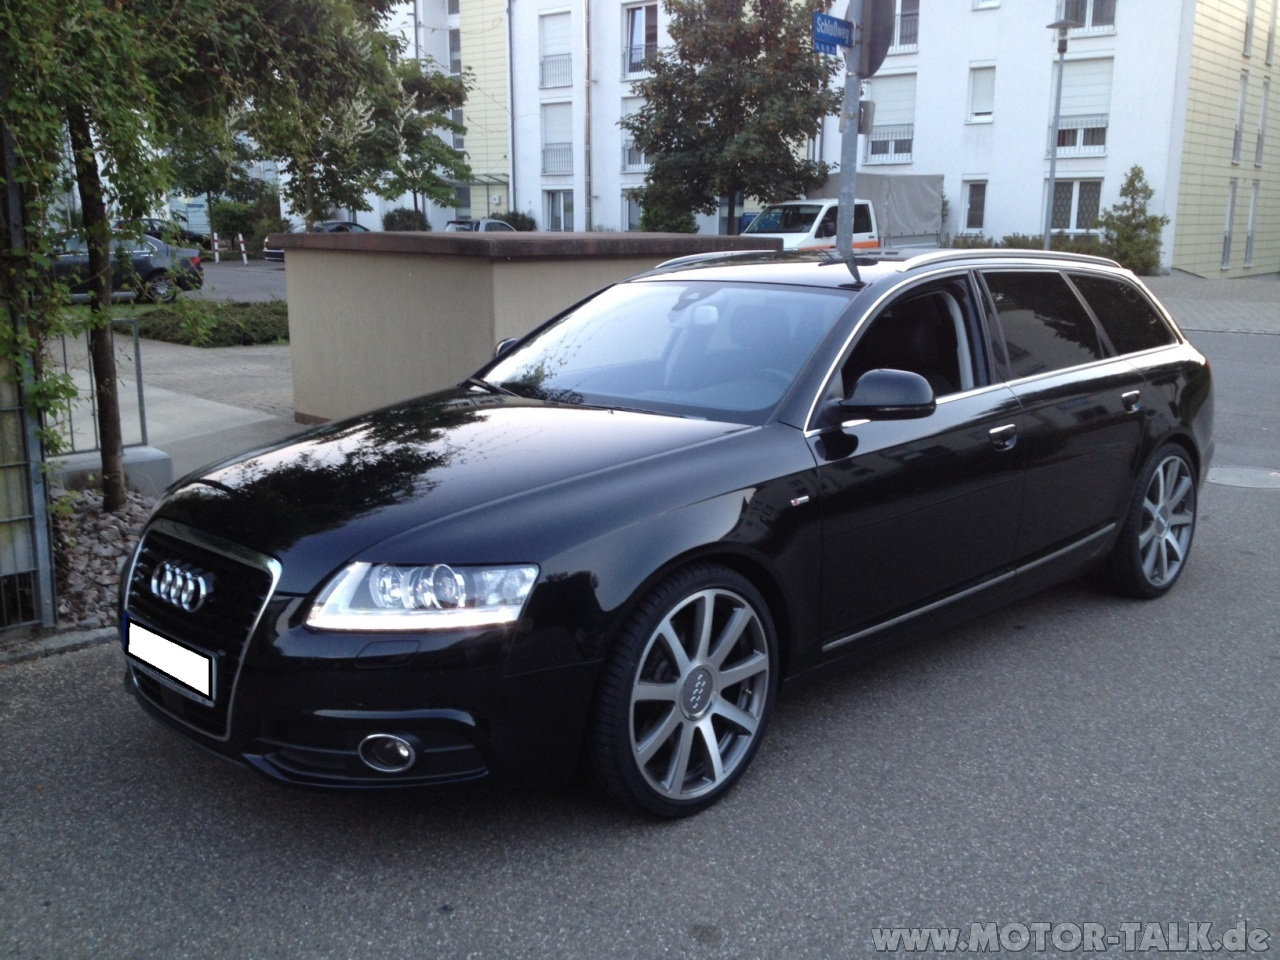 2010 audi a6 4f c6 pictures information and specs auto. Black Bedroom Furniture Sets. Home Design Ideas